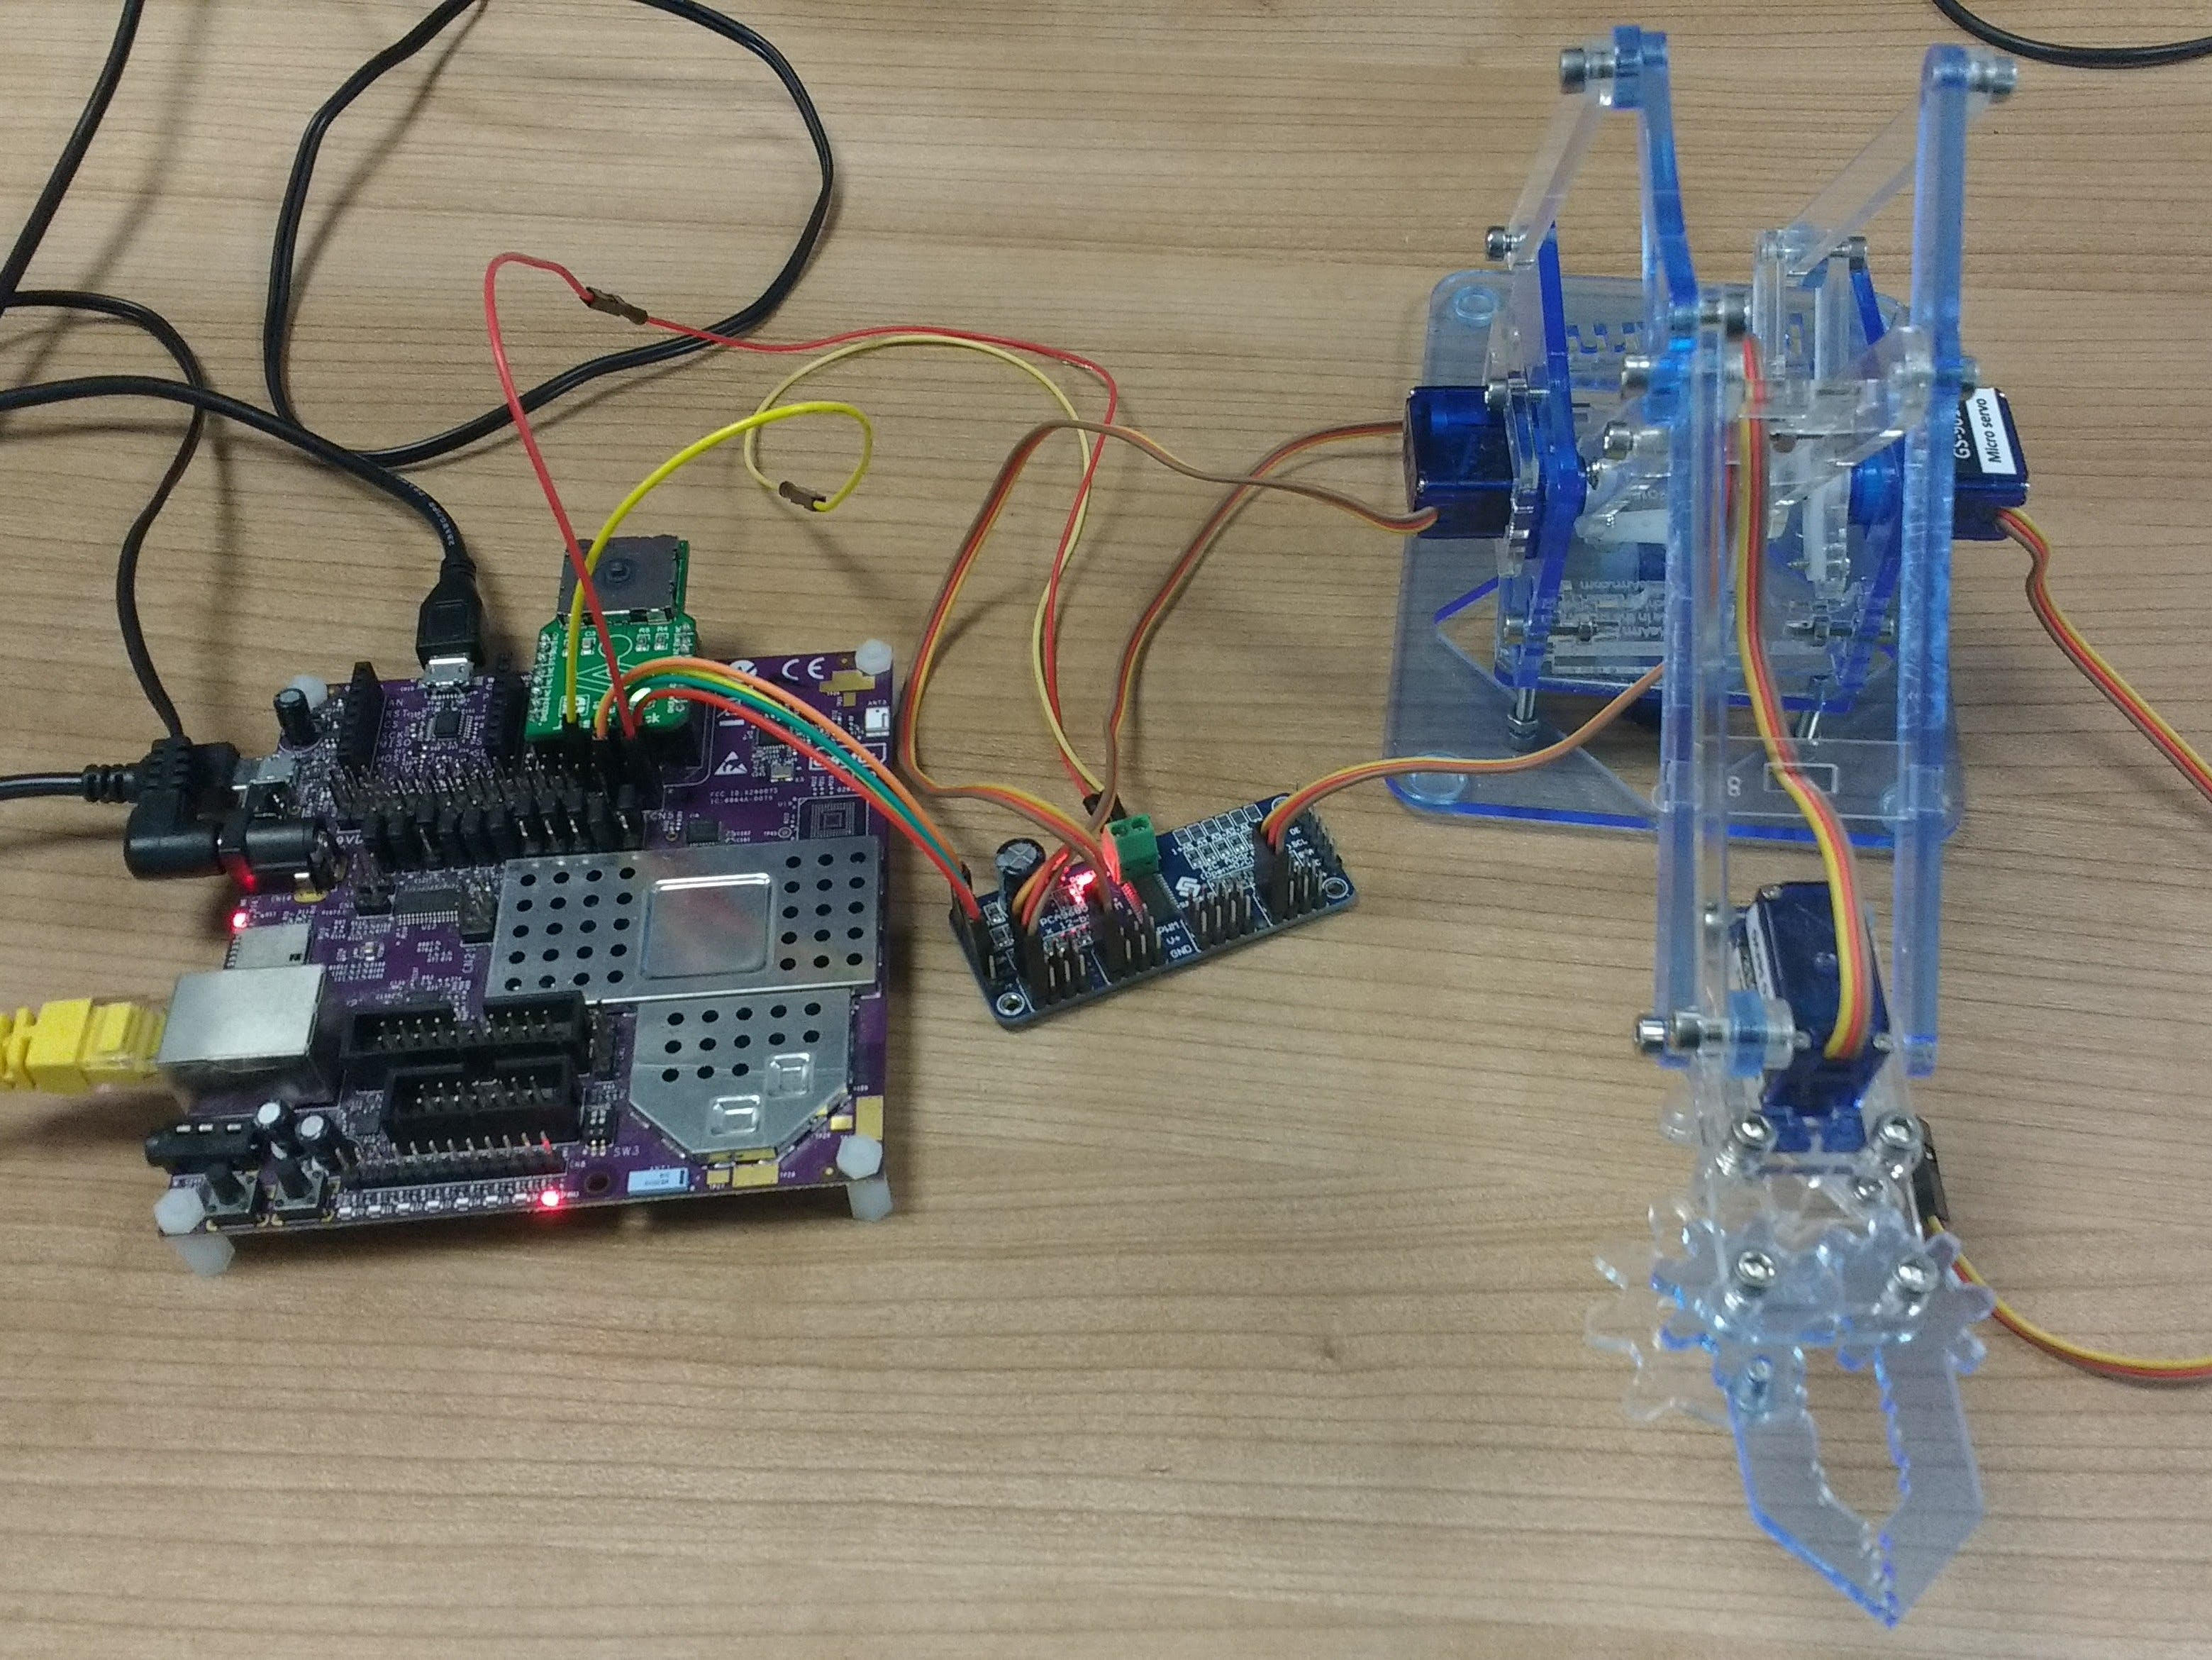 Controlling a Robotic Arm using the Creator Ci40